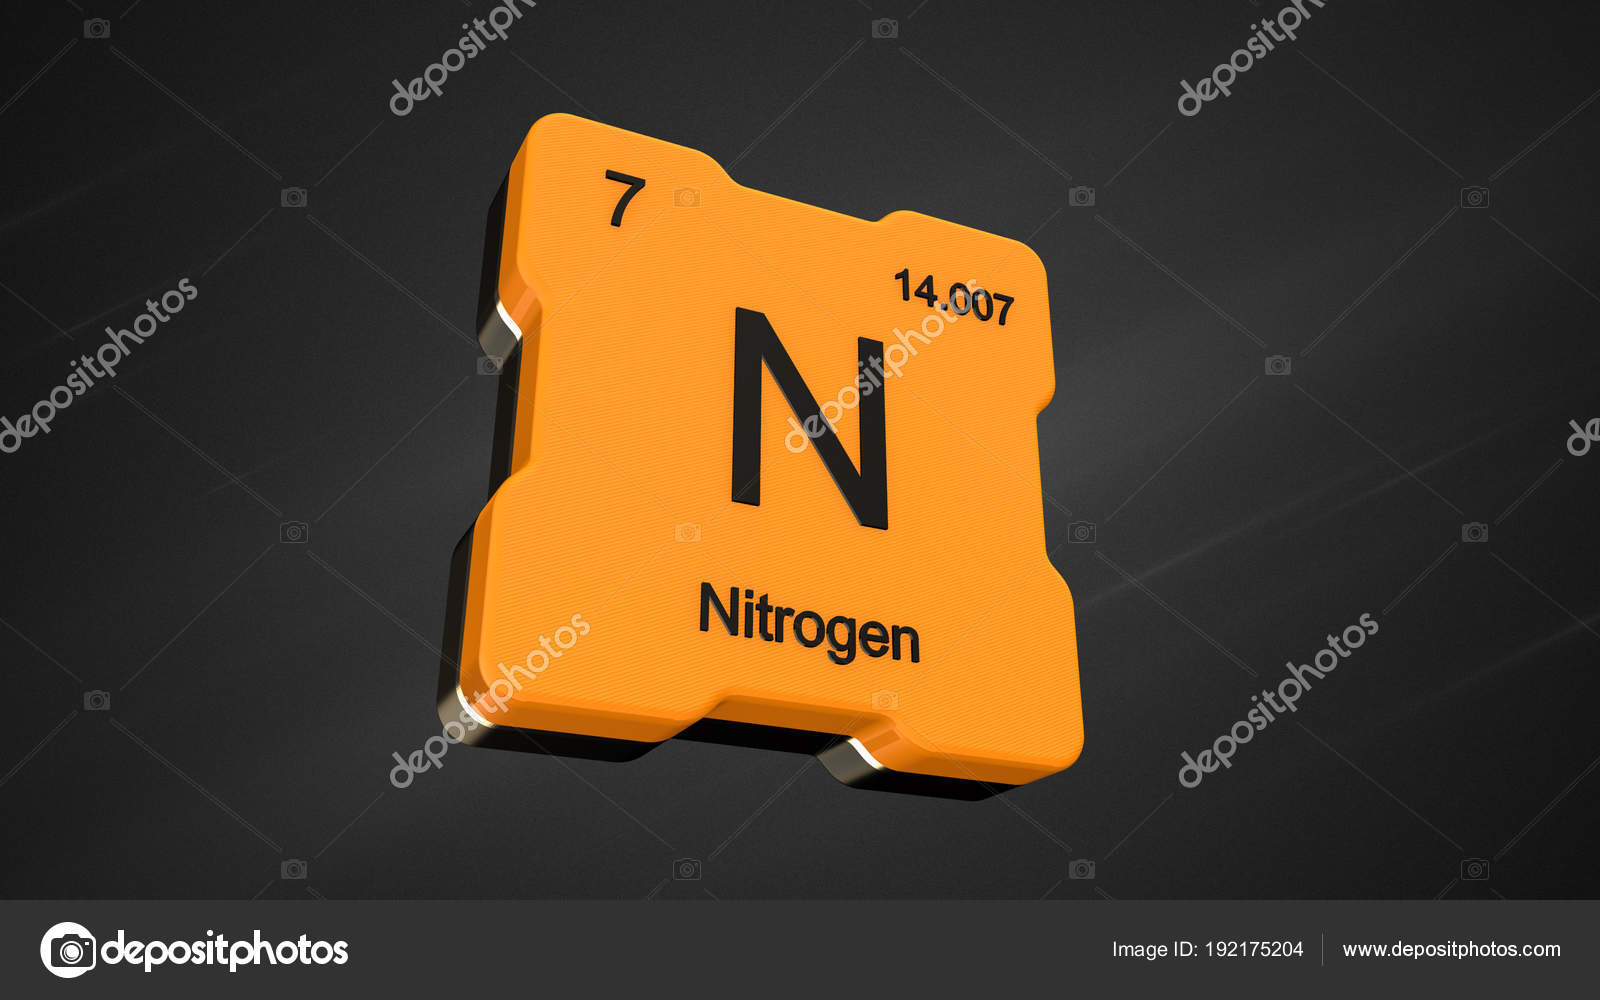 Nitrogen element number periodic table futuristic yellow icon nice nitrogen element number 7 from the periodic table on futuristic yellow icon and nice lens flare on noisy dark background 3d render photo by conceptw urtaz Images